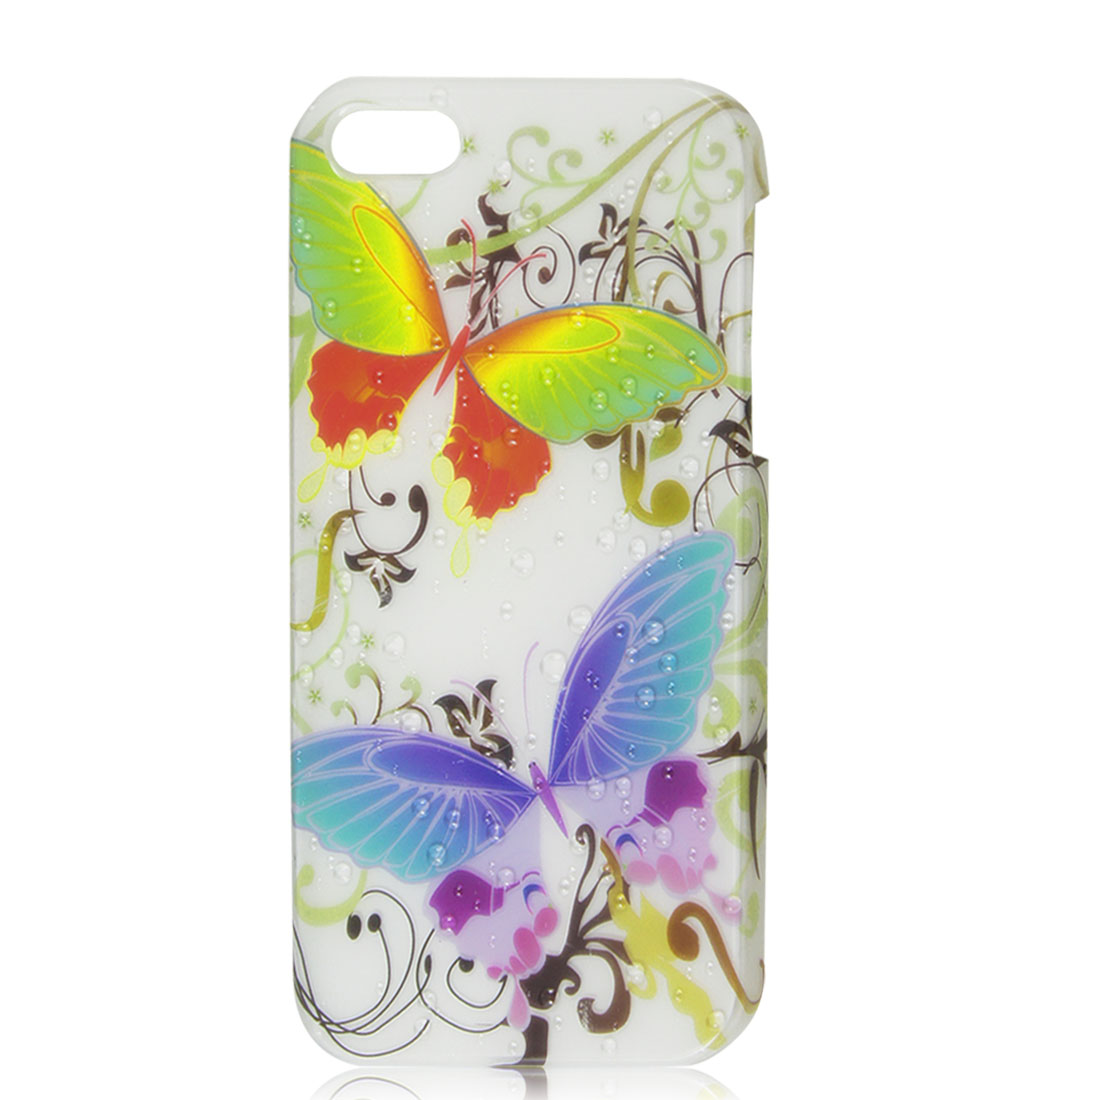 Colorful Butterfly 3D Water Drop Raindrop Hard Back Case Cover for iPhone 5 5G